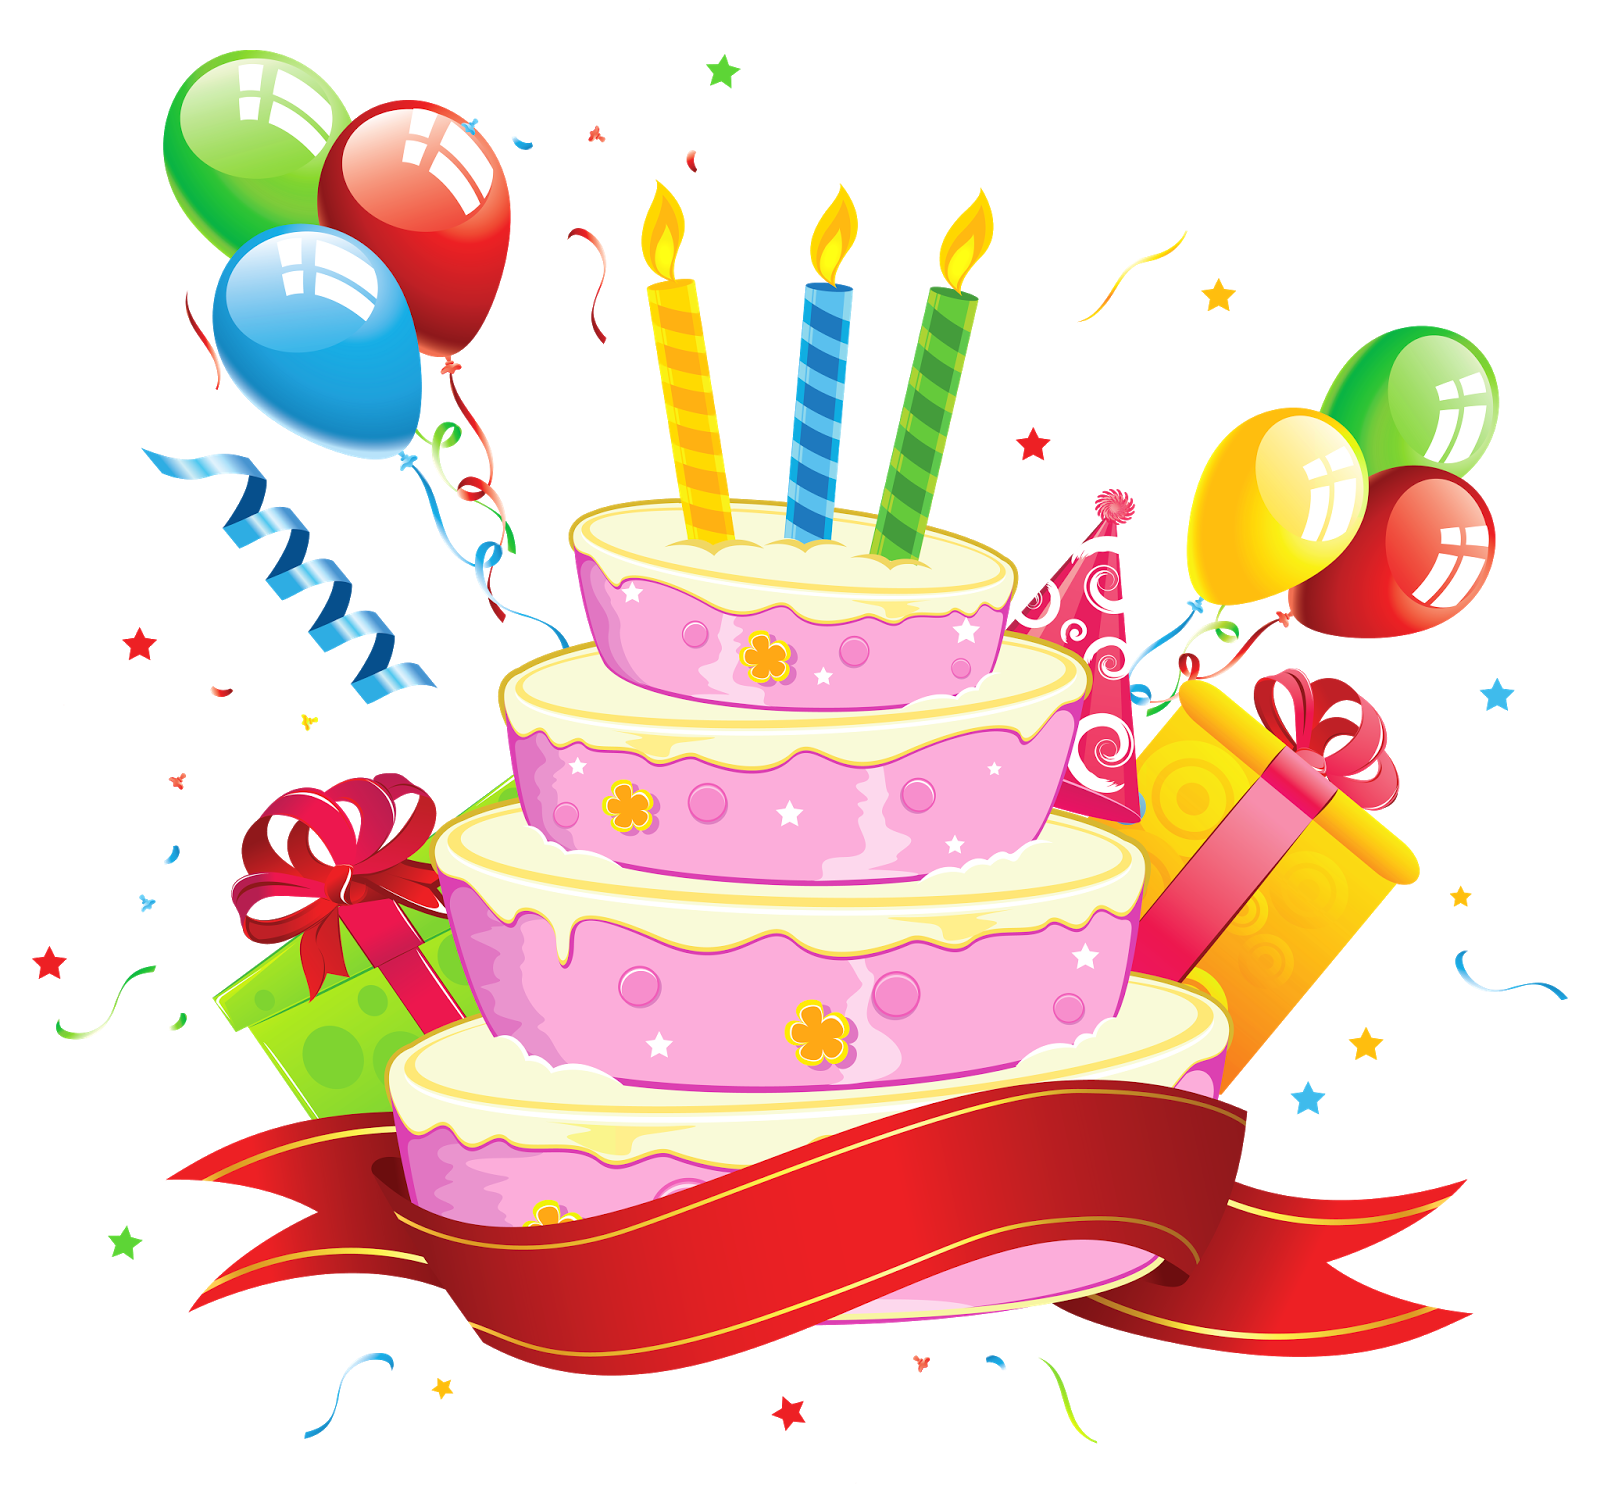 Aniversario clipart image library Bolo de aniversario png clipart images gallery for free download ... image library